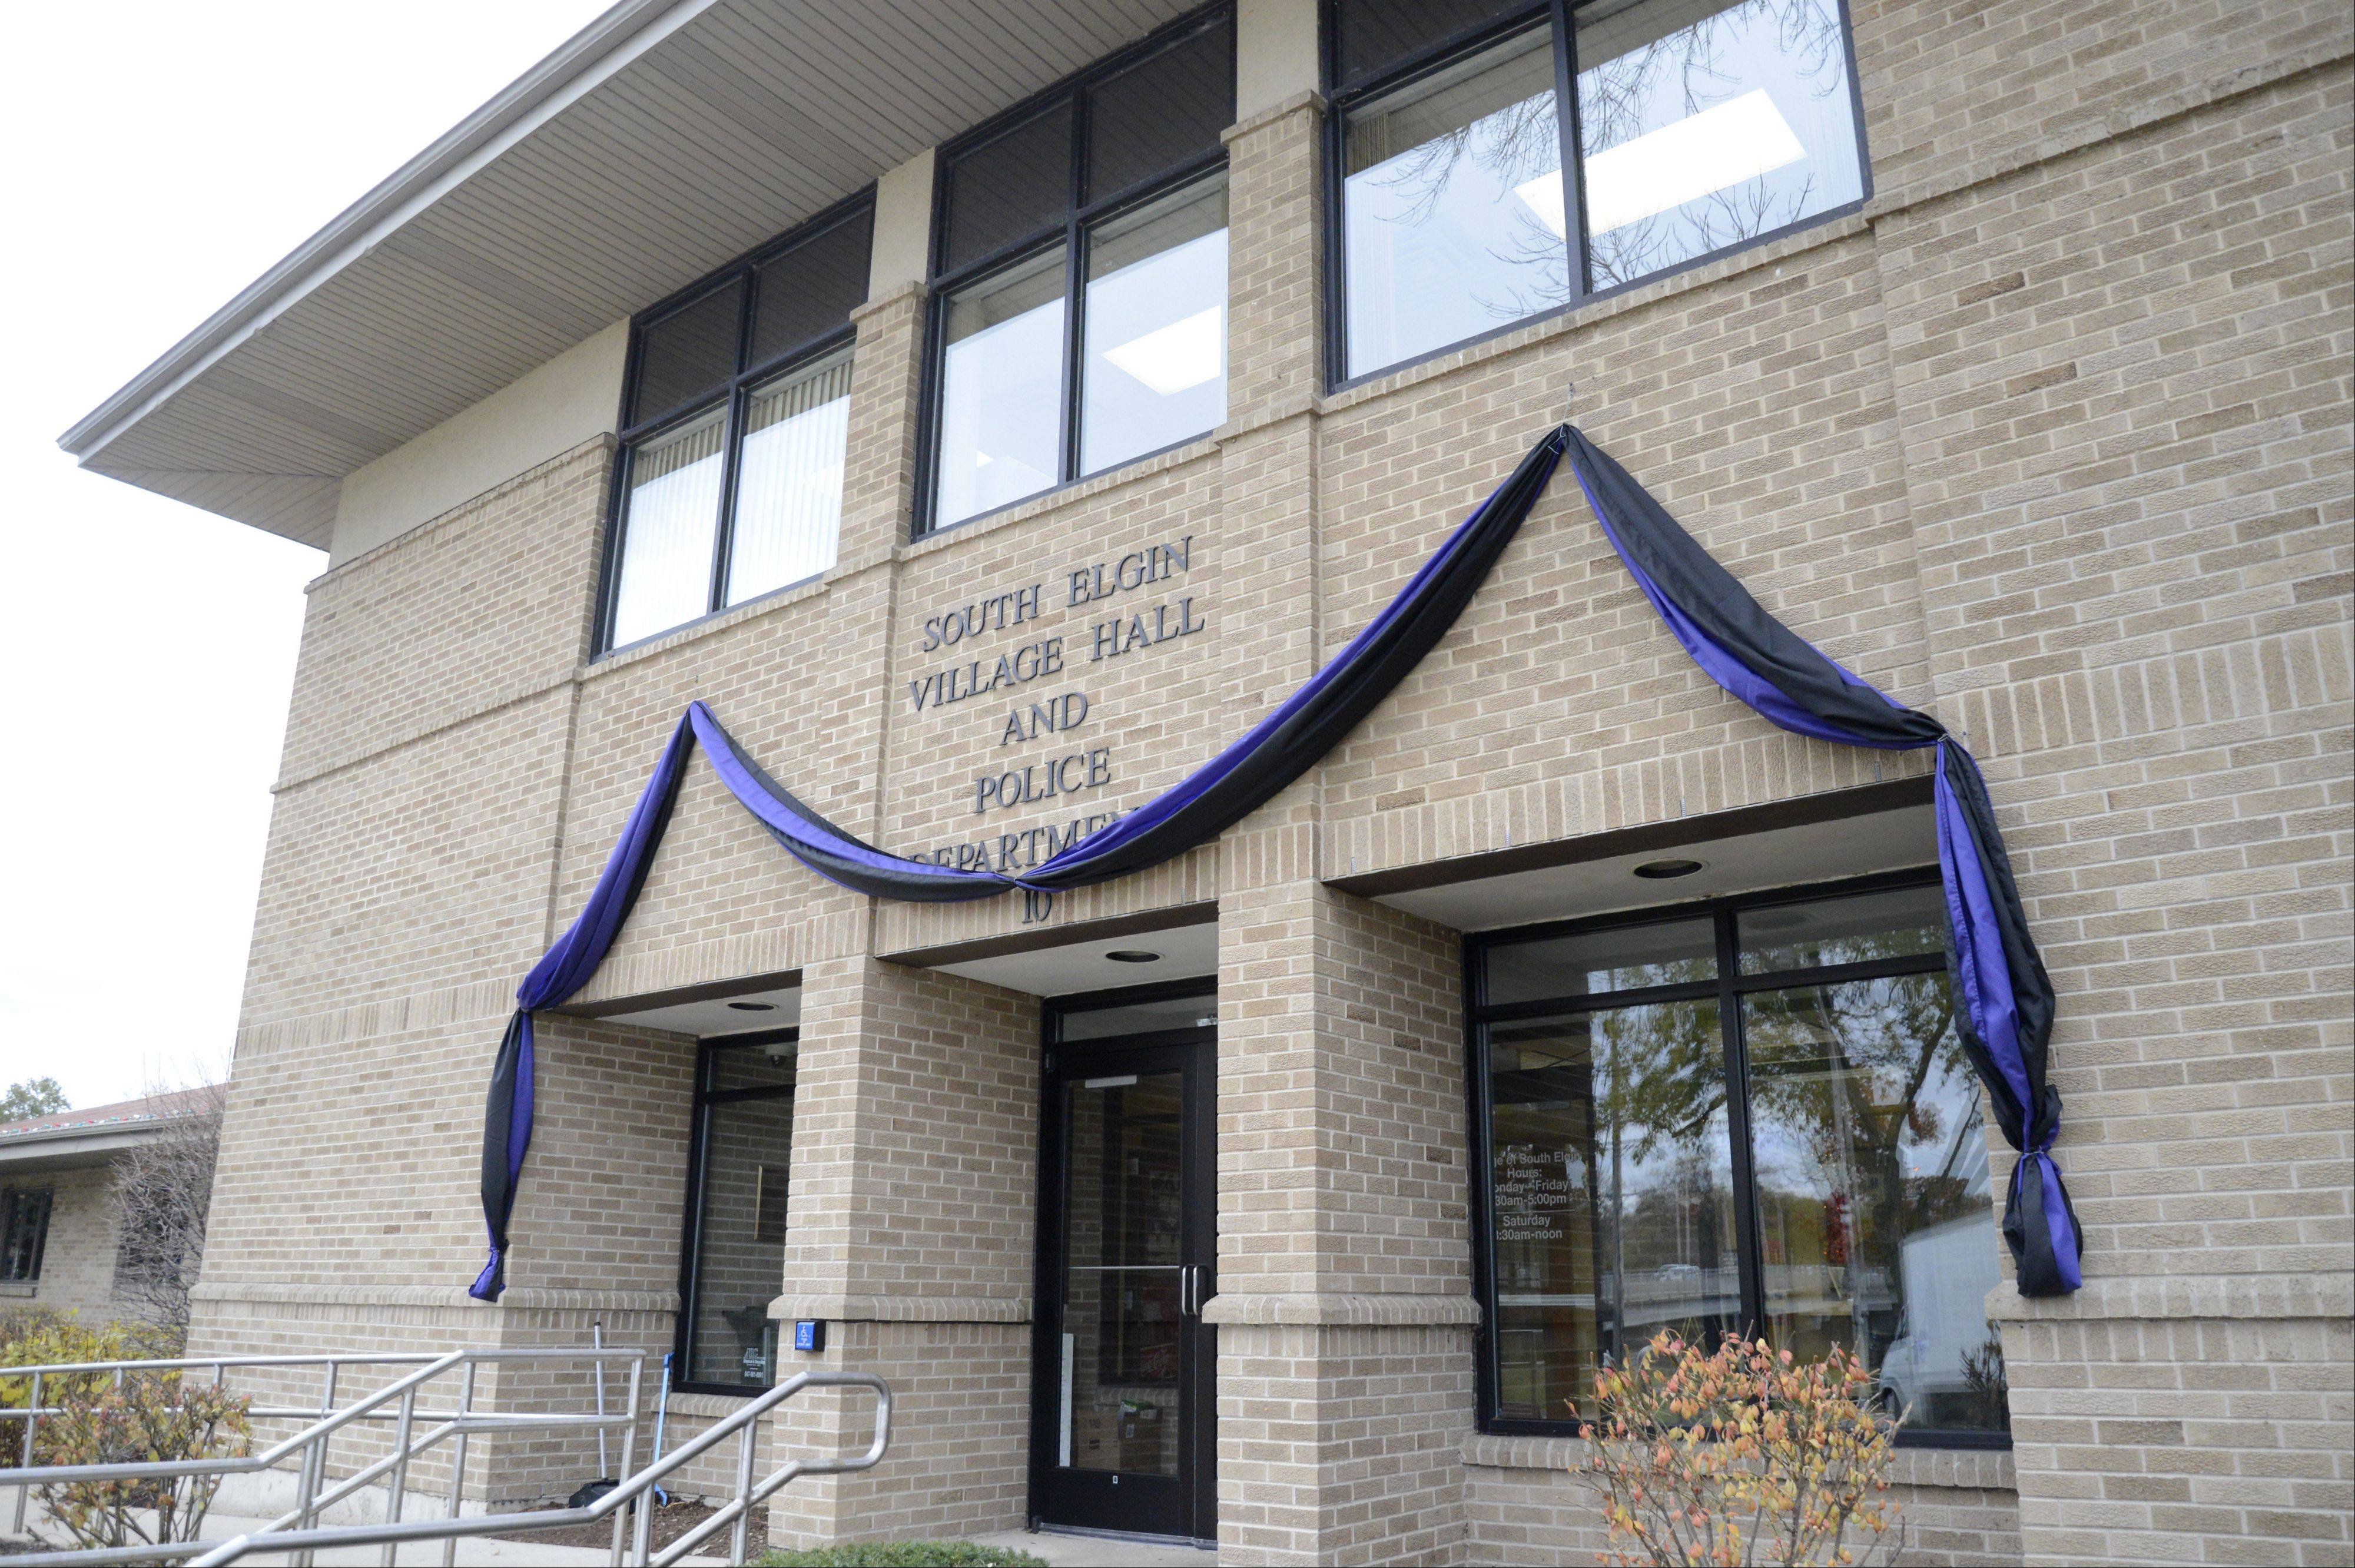 Black and purple bunting hangs from the entrance to the South Elgin's village hall and police department in honor of Village President Jim Hansen, who died Nov. 1.